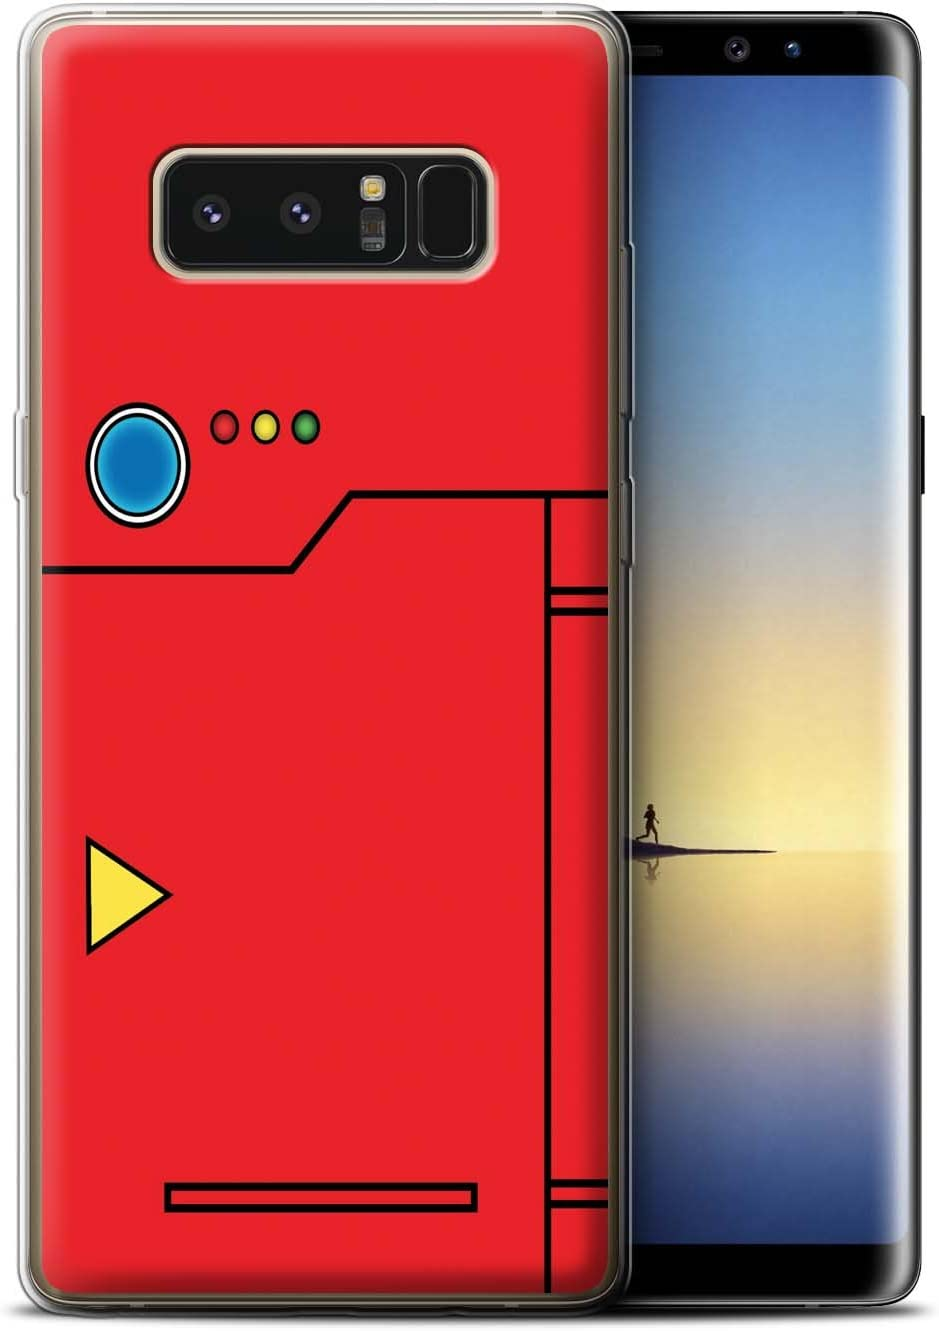 Stuff4 Phone Case for Samsung Galaxy J1//J100 Pokeball Anime Inspired Yellow Design Transparent Clear Ultra Soft Flexi Silicone Gel//TPU Bumper Cover